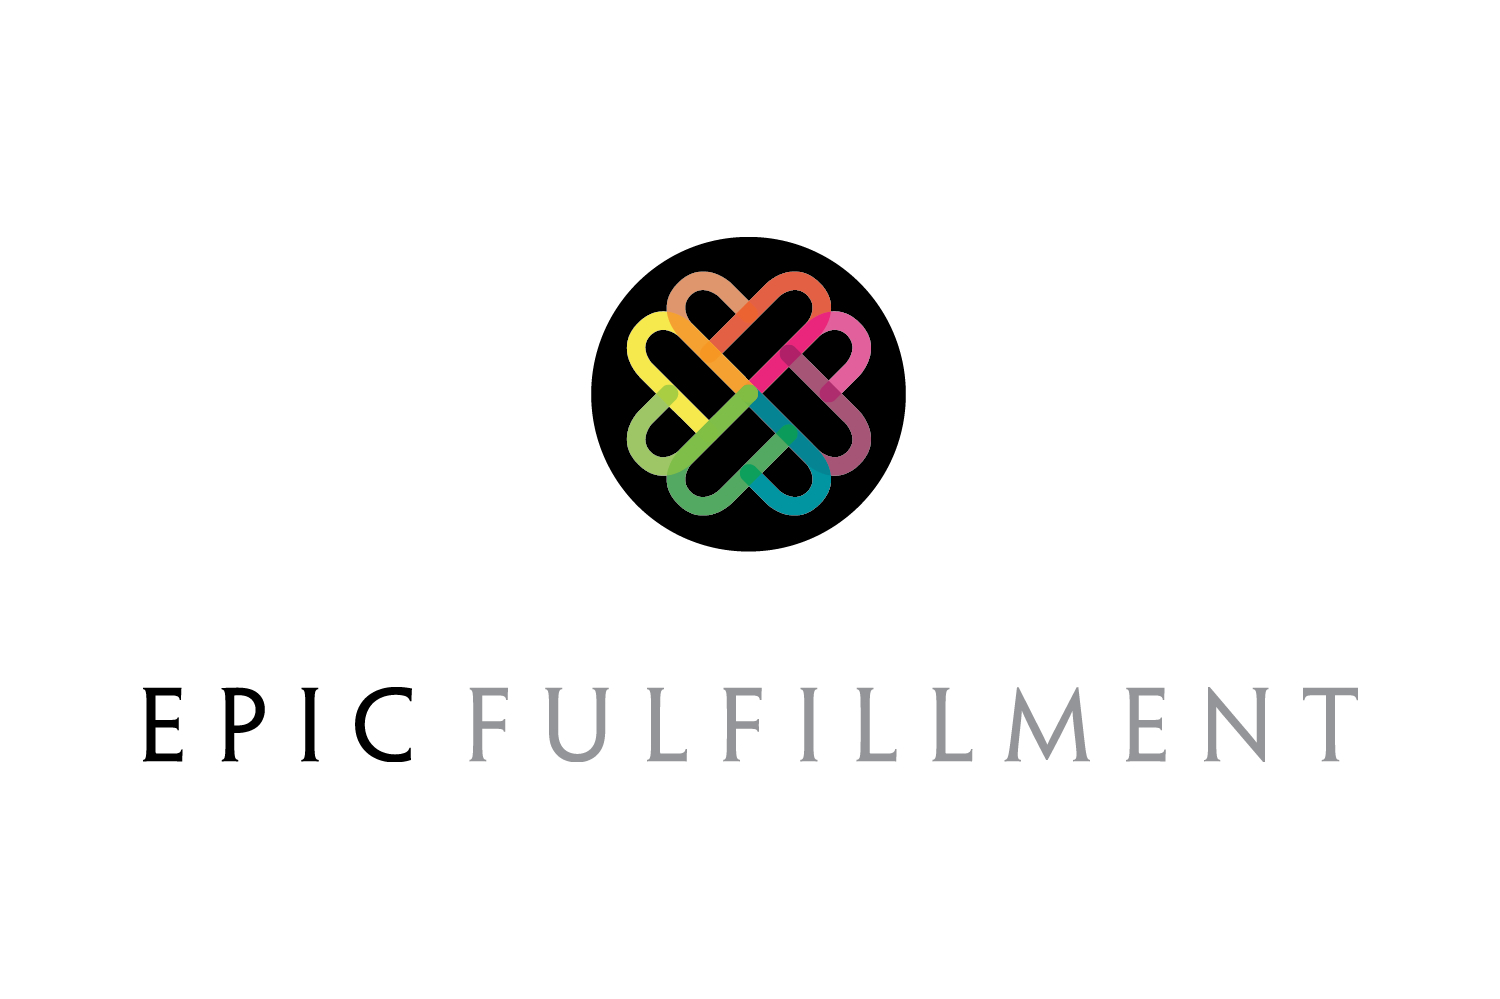 VAWD Certification Opens New Doors for EPIC Fulfillment, Inc.